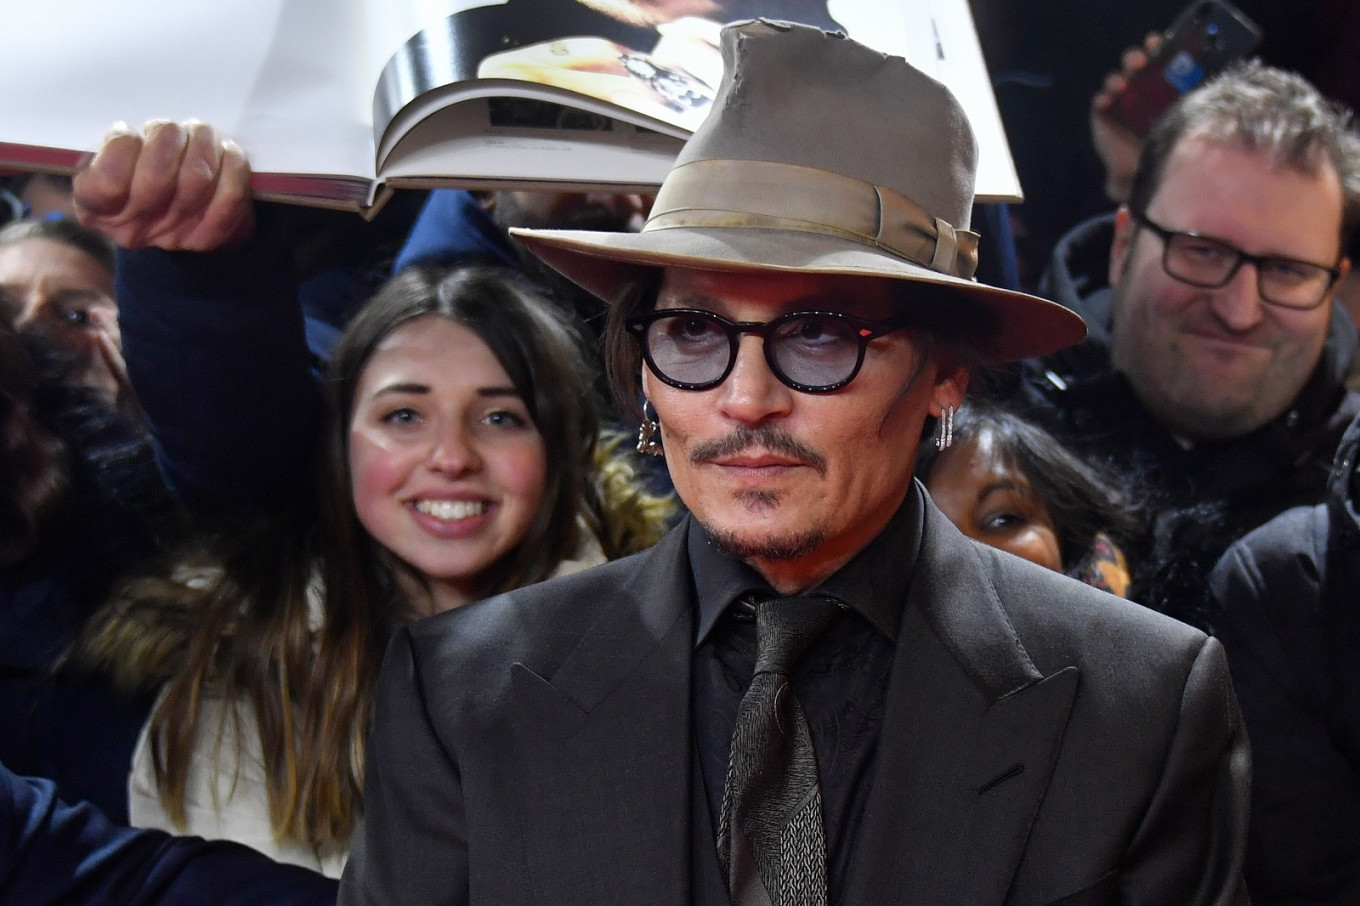 Johnny Depp down but not entirely out after losing 'wife beater' case